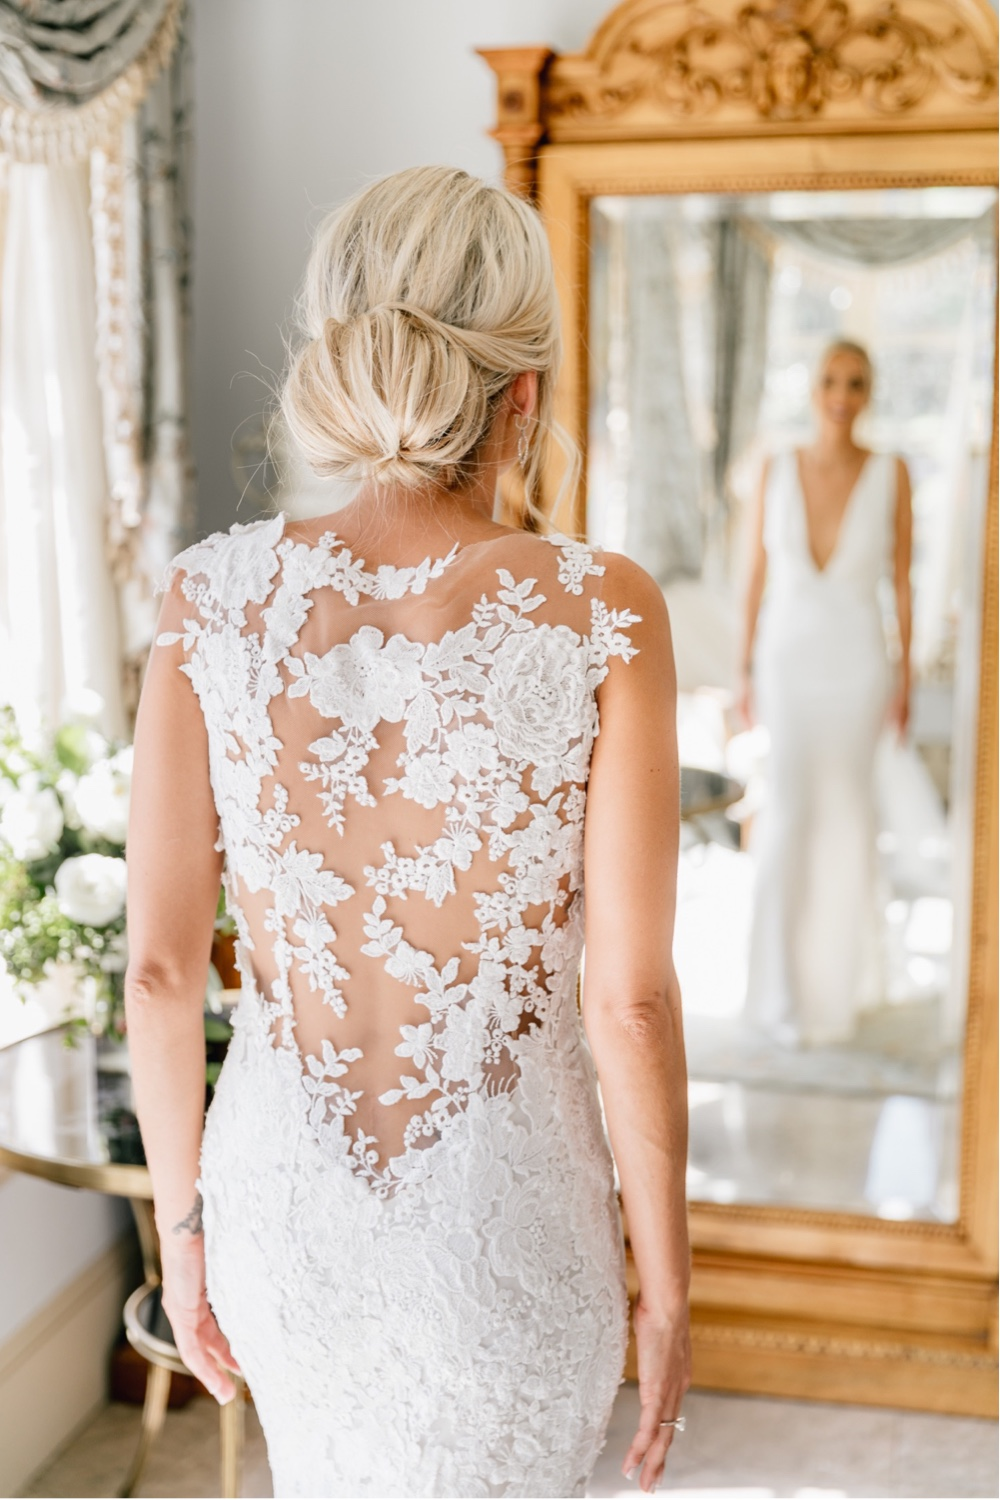 254 The Inn At Barley Sheaf Farm Wedding Elegant Wedding Gown